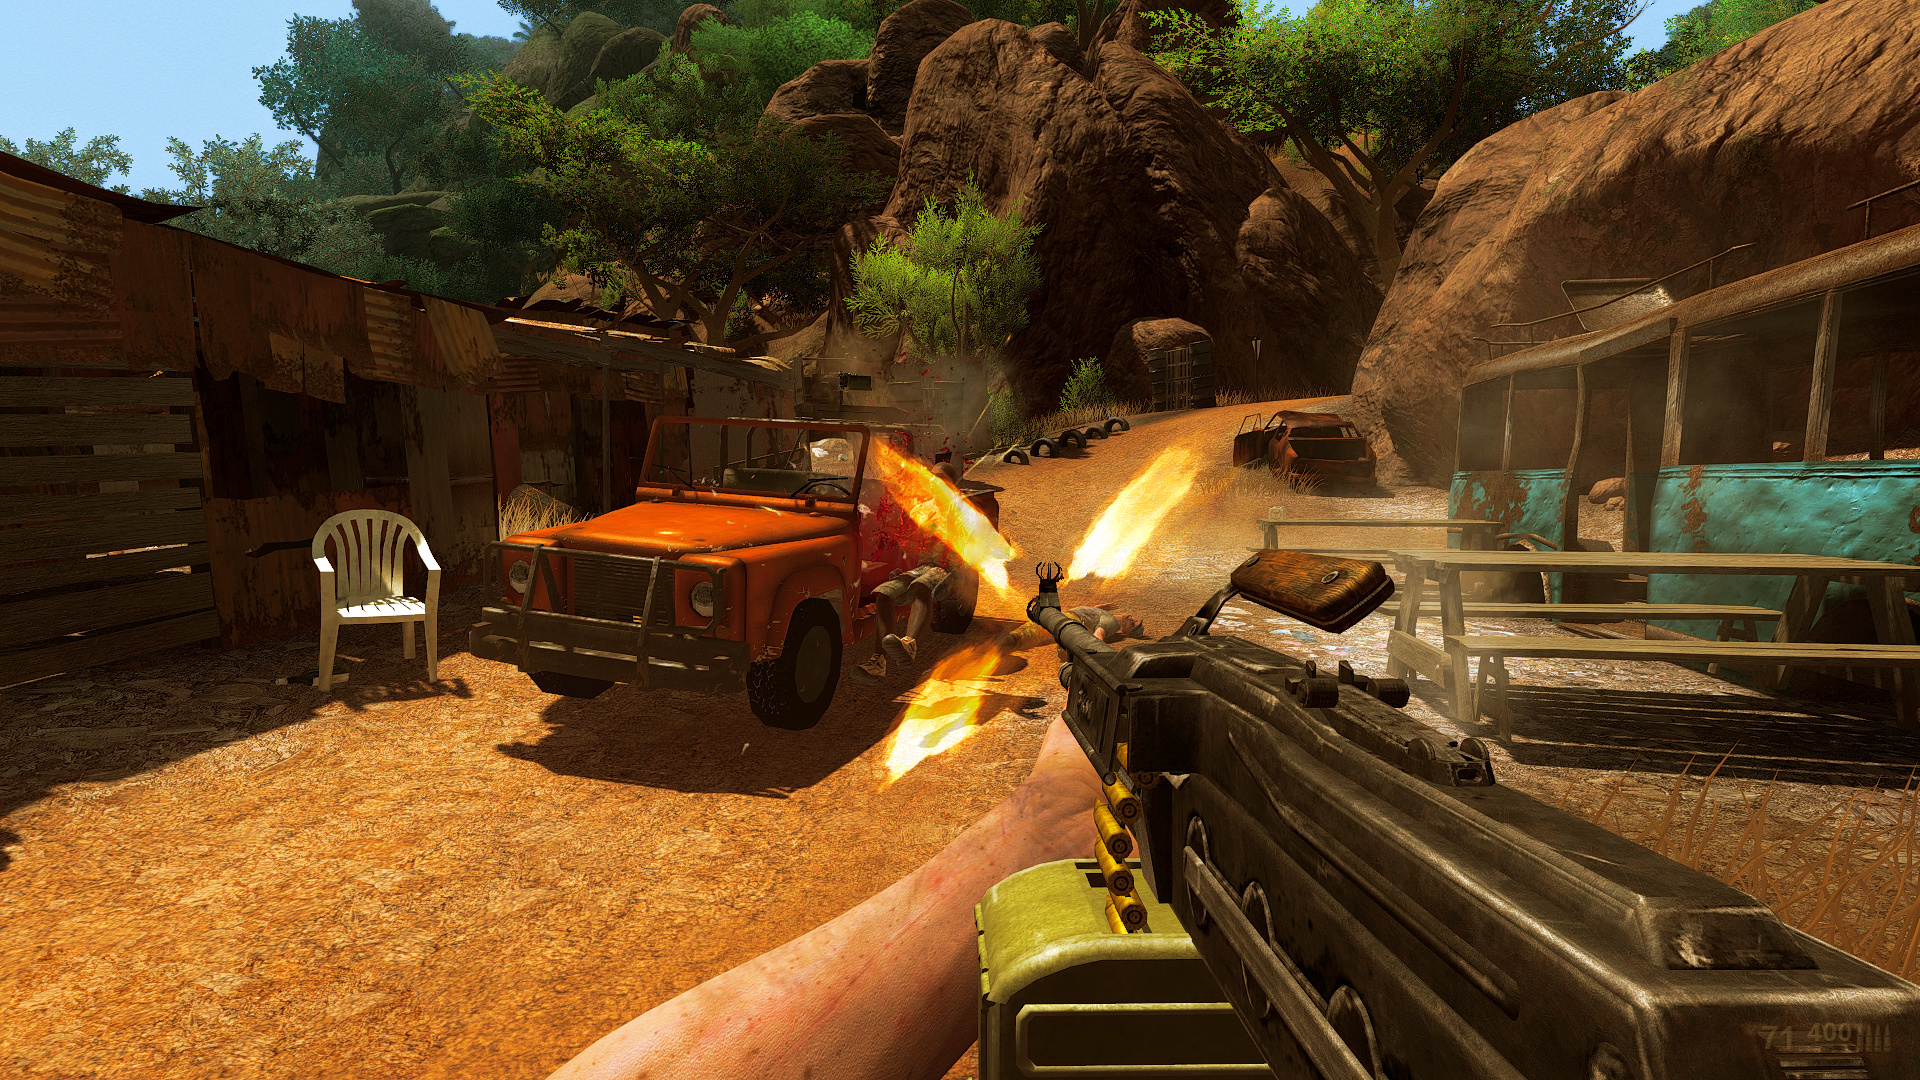 farcry2 2018-02-11 20-57-30-861.jpg - Far Cry 2